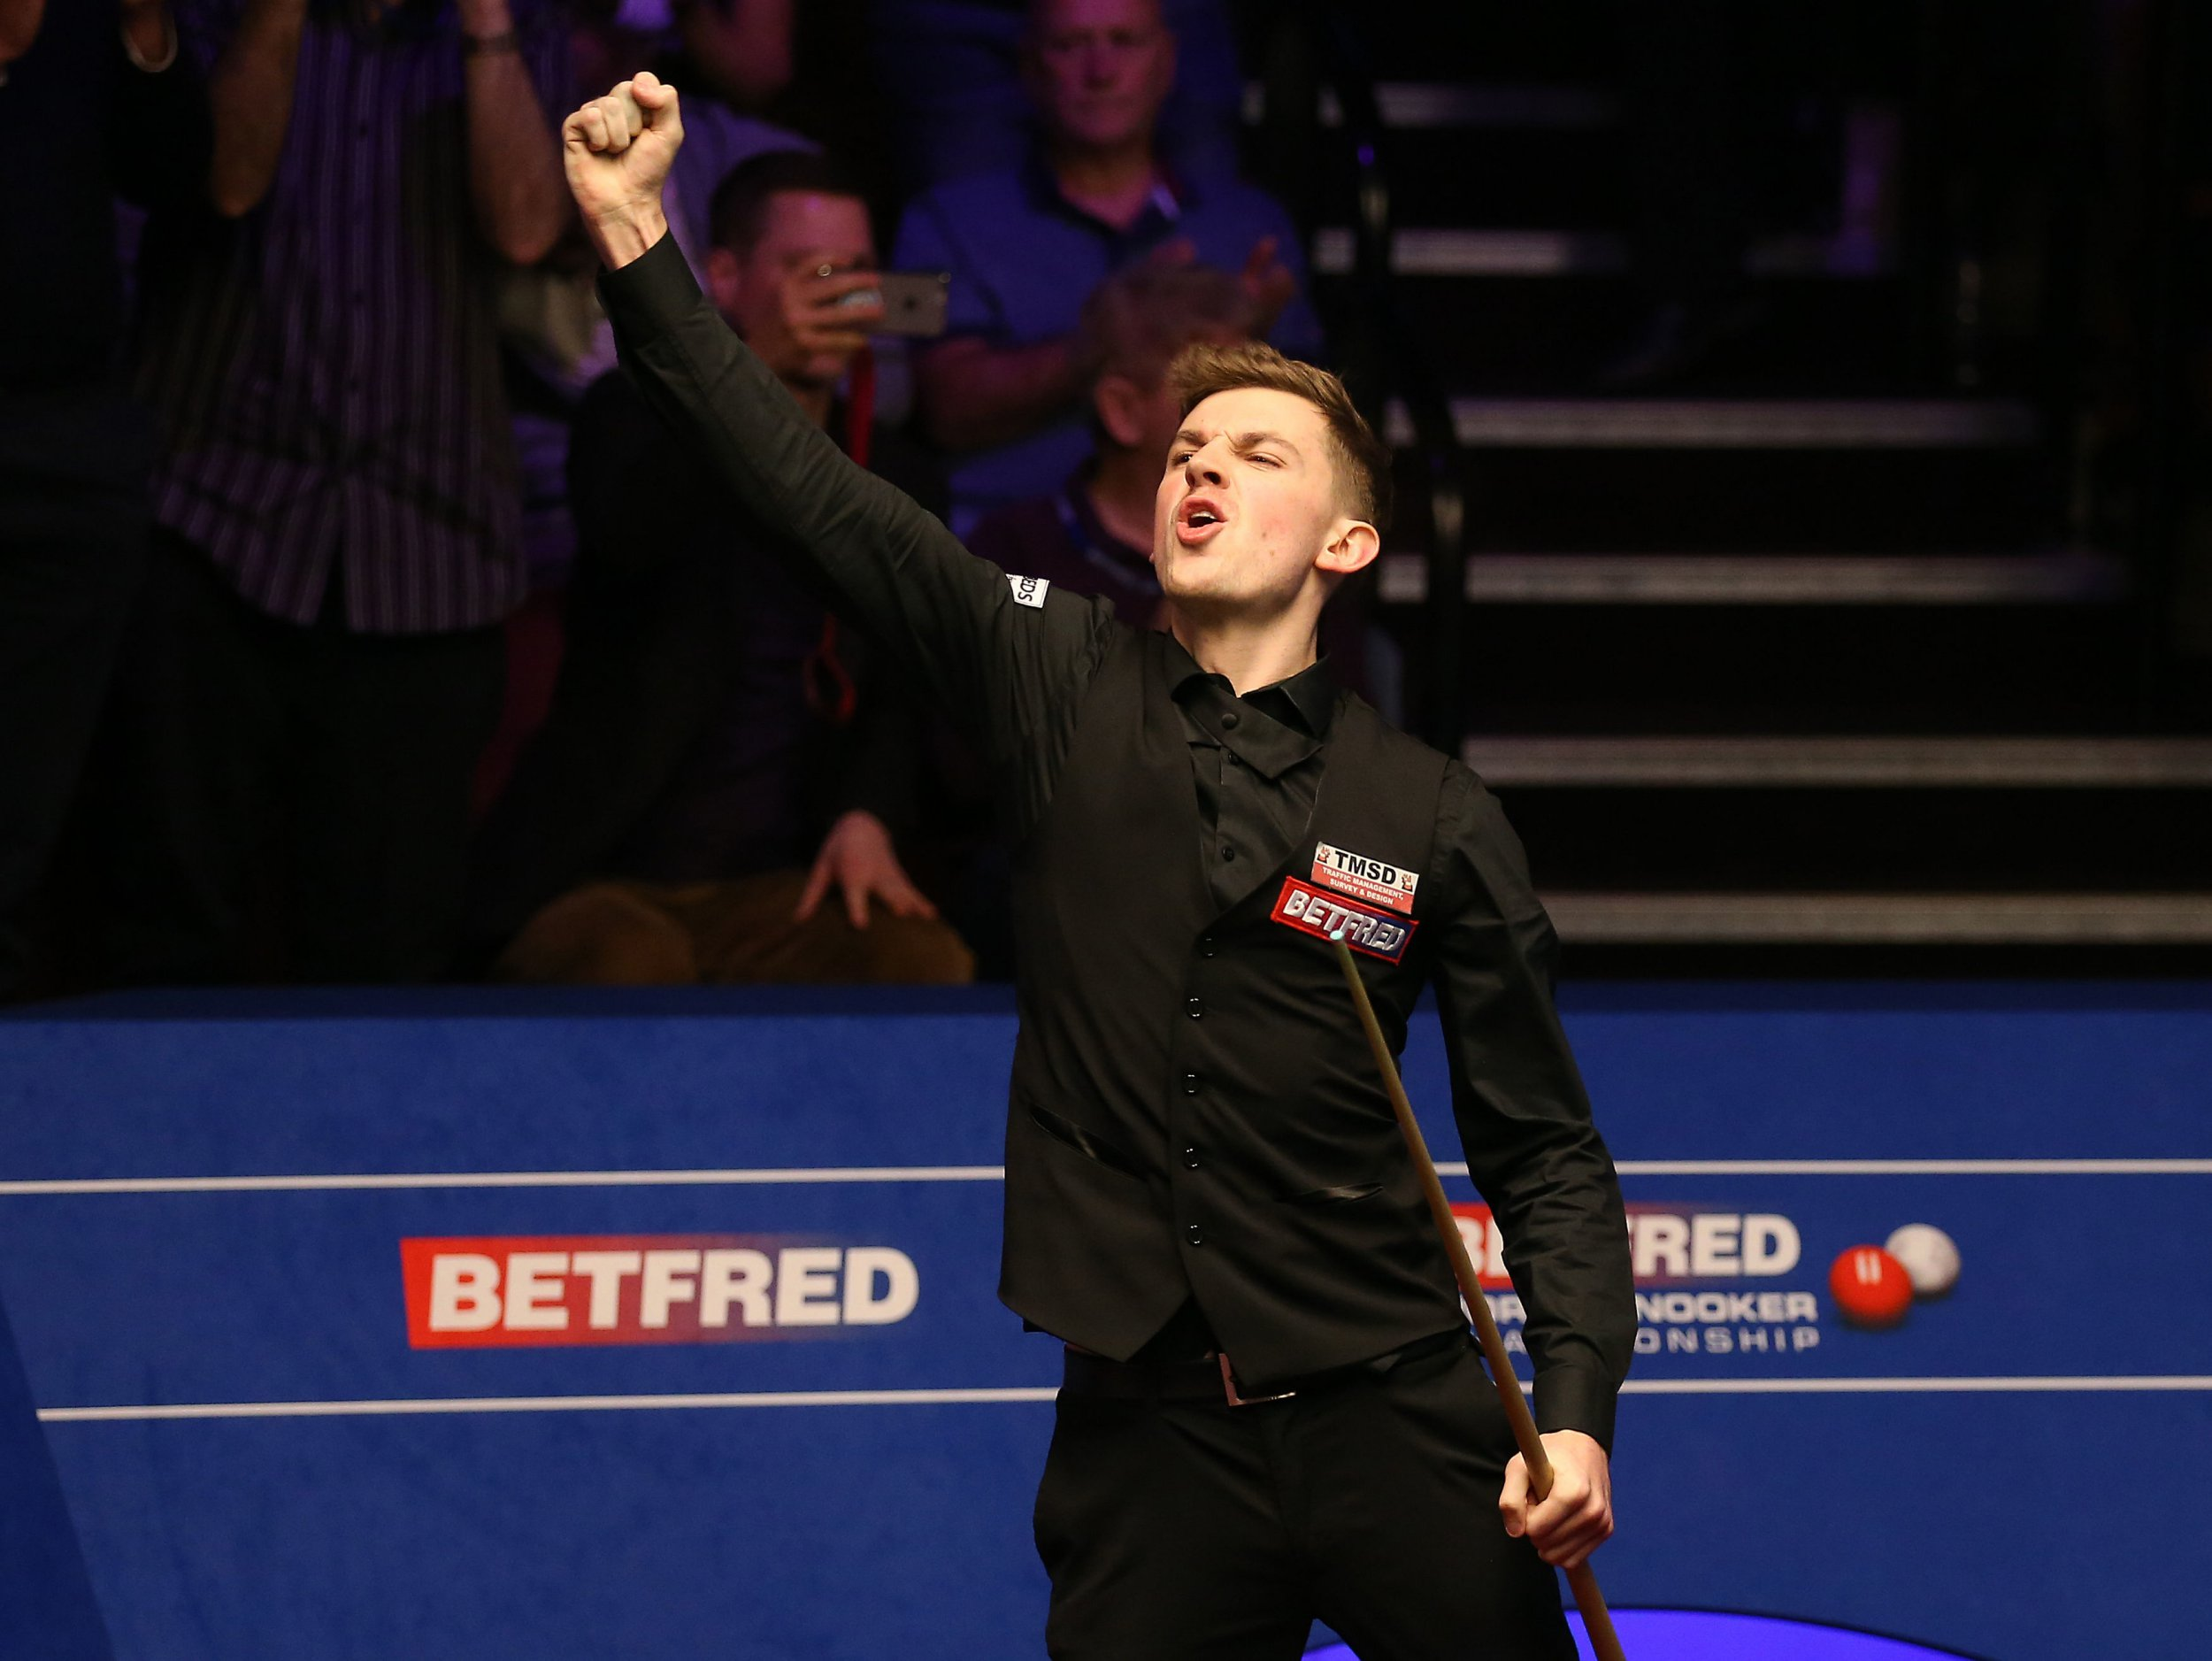 Who is snooker player James Cahill and what is his world ranking?